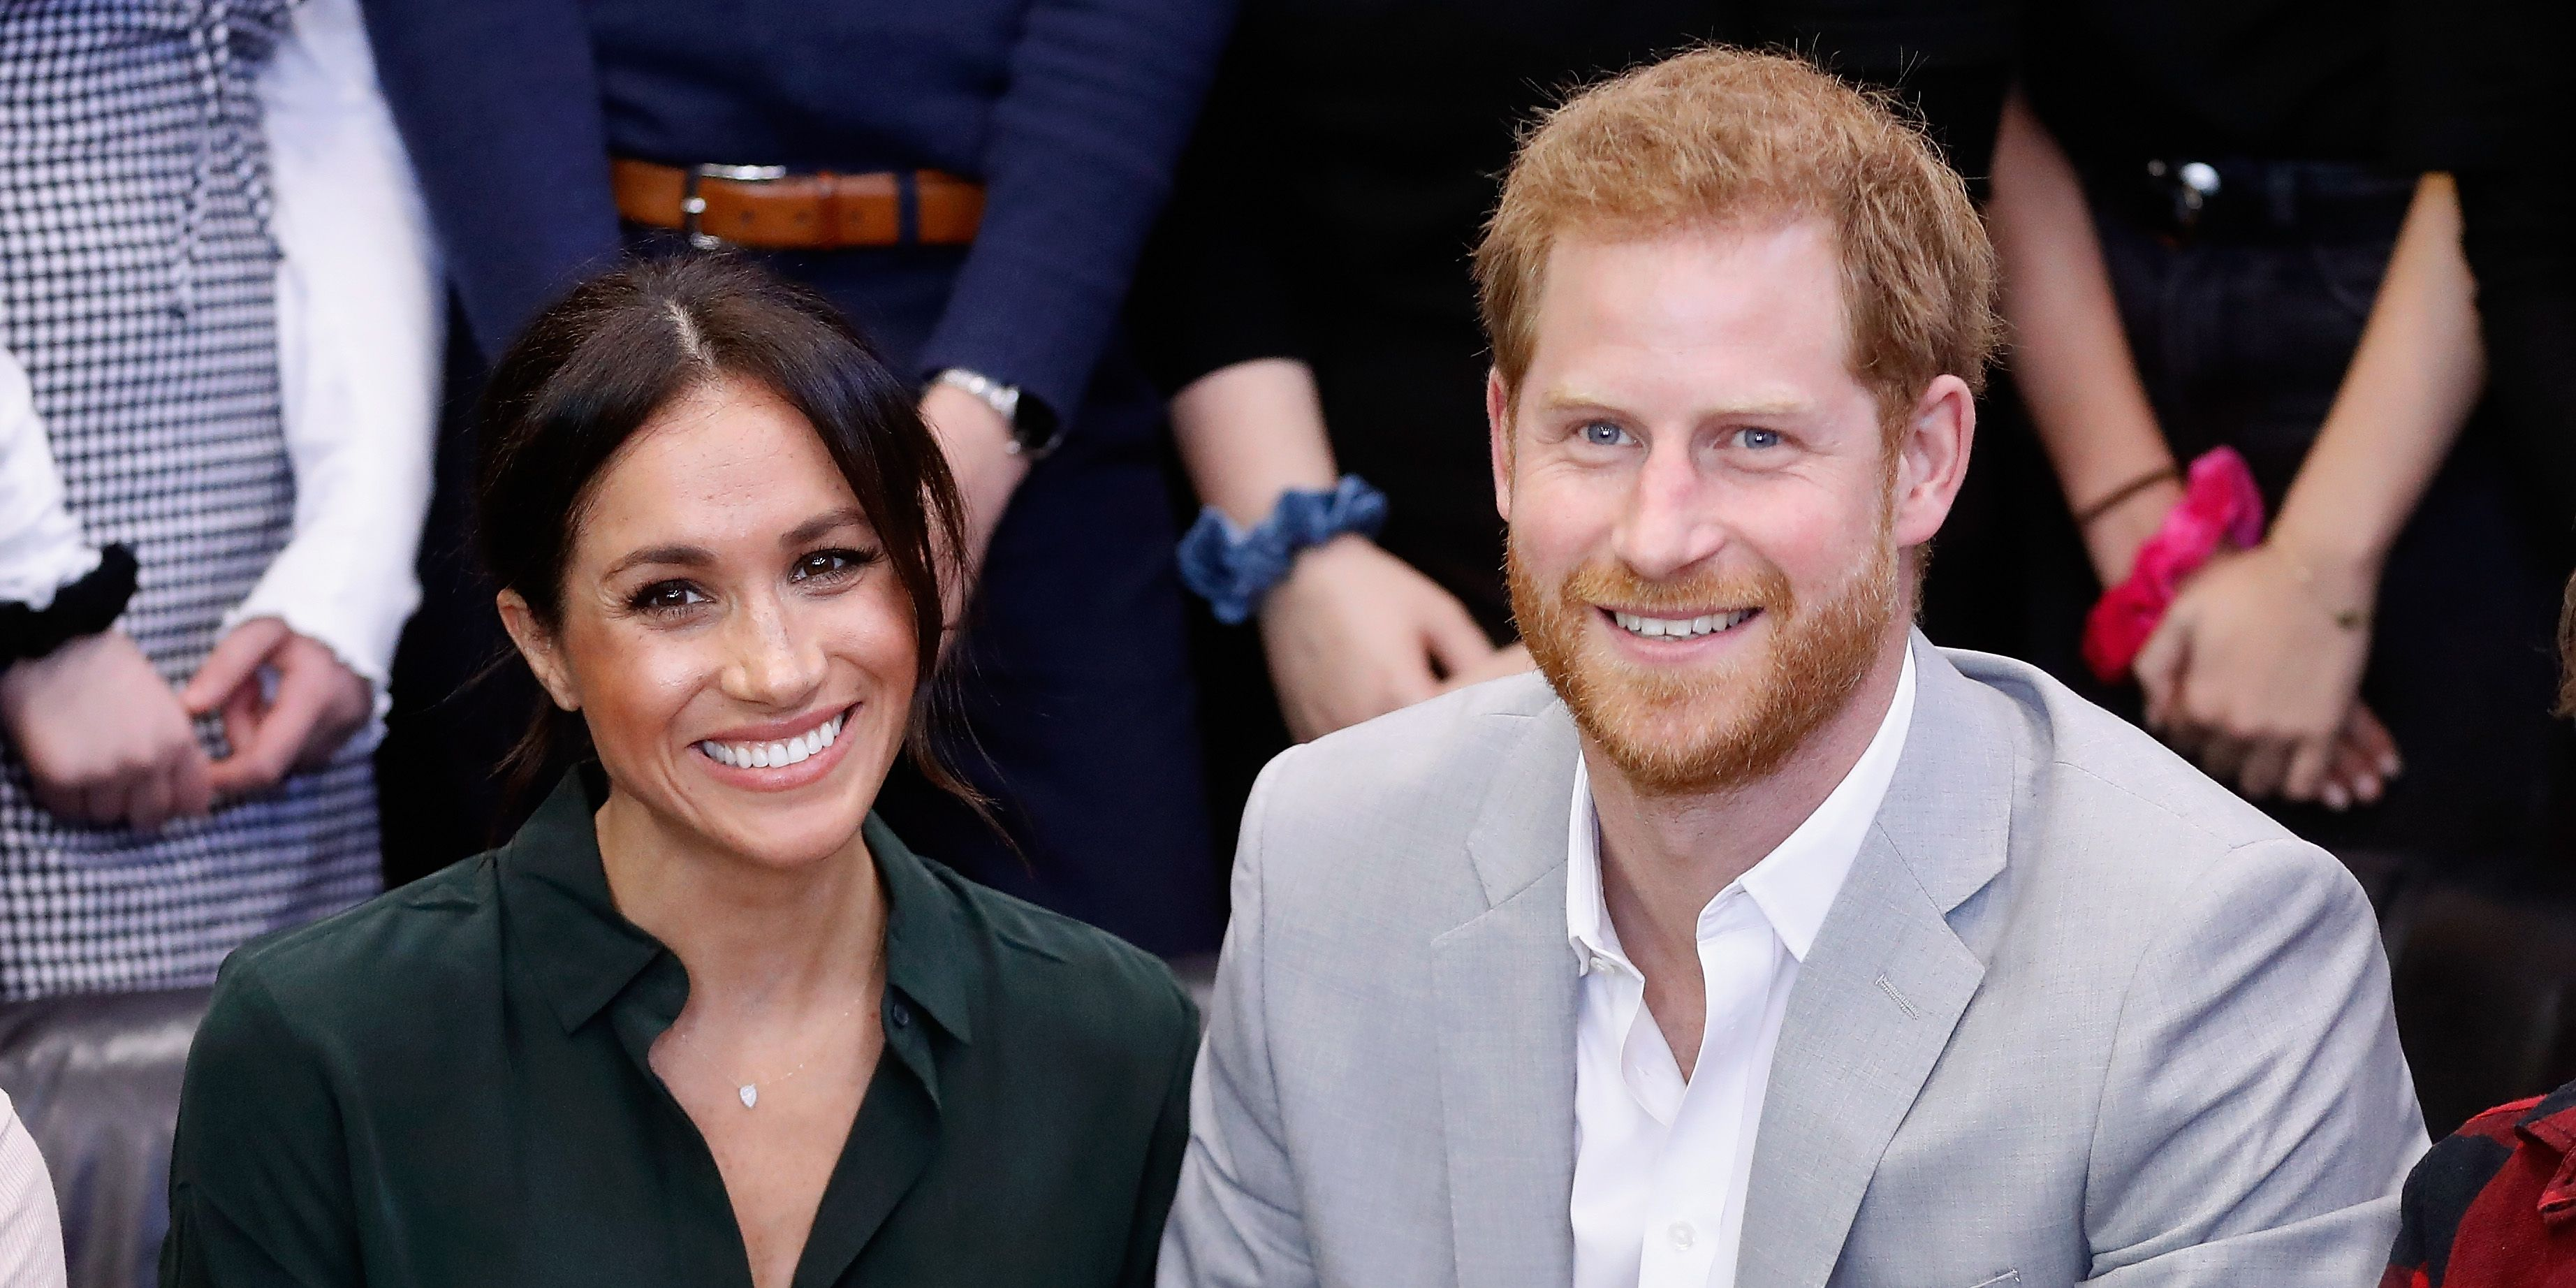 Prince Harry and Meghan Markle in Sussex